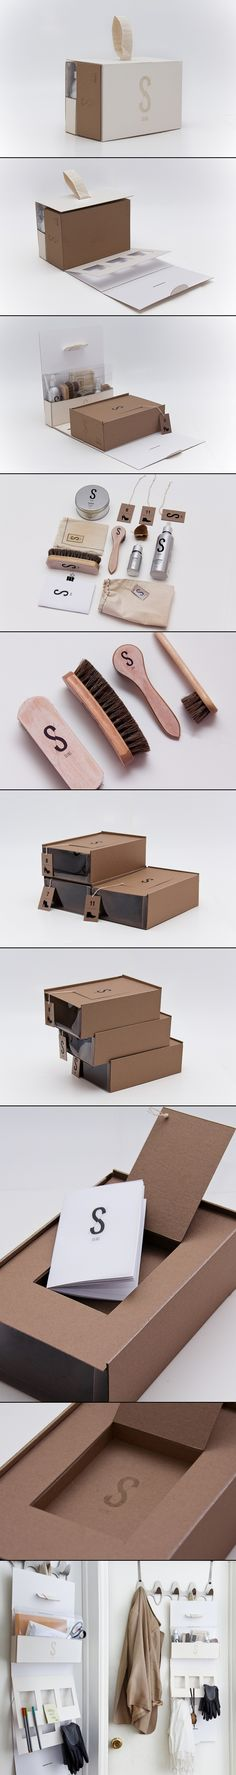 SKINS Shoe #Packaging #Design | Jiani Lu so cool makes me want to buy shoes you have to polish : ) PD #identity #branding